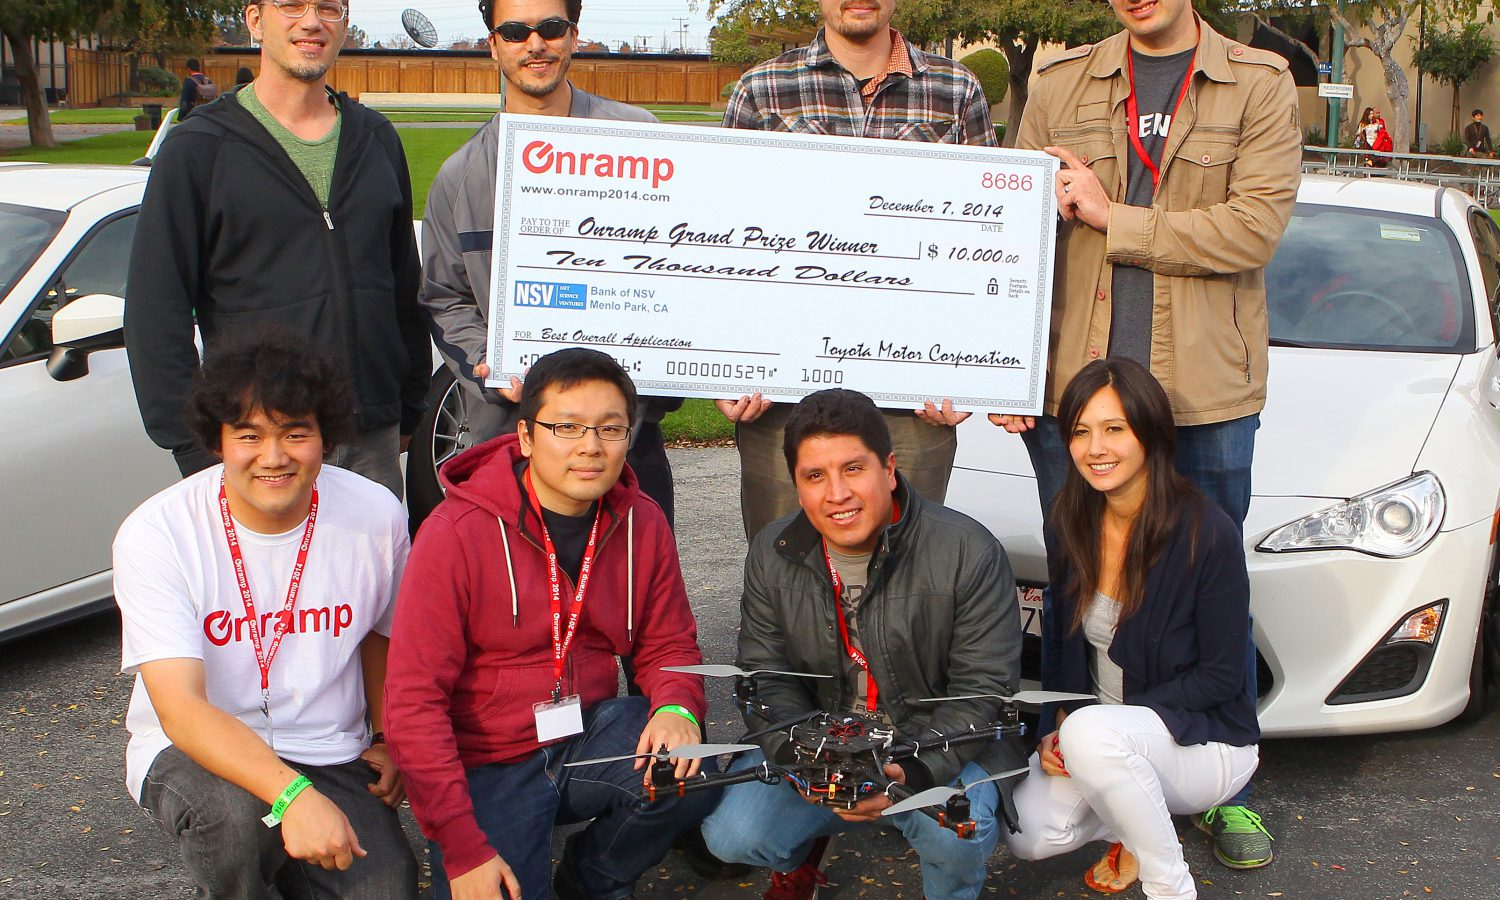 Toyota Announces Winners of Silicon Valley App Design Competition